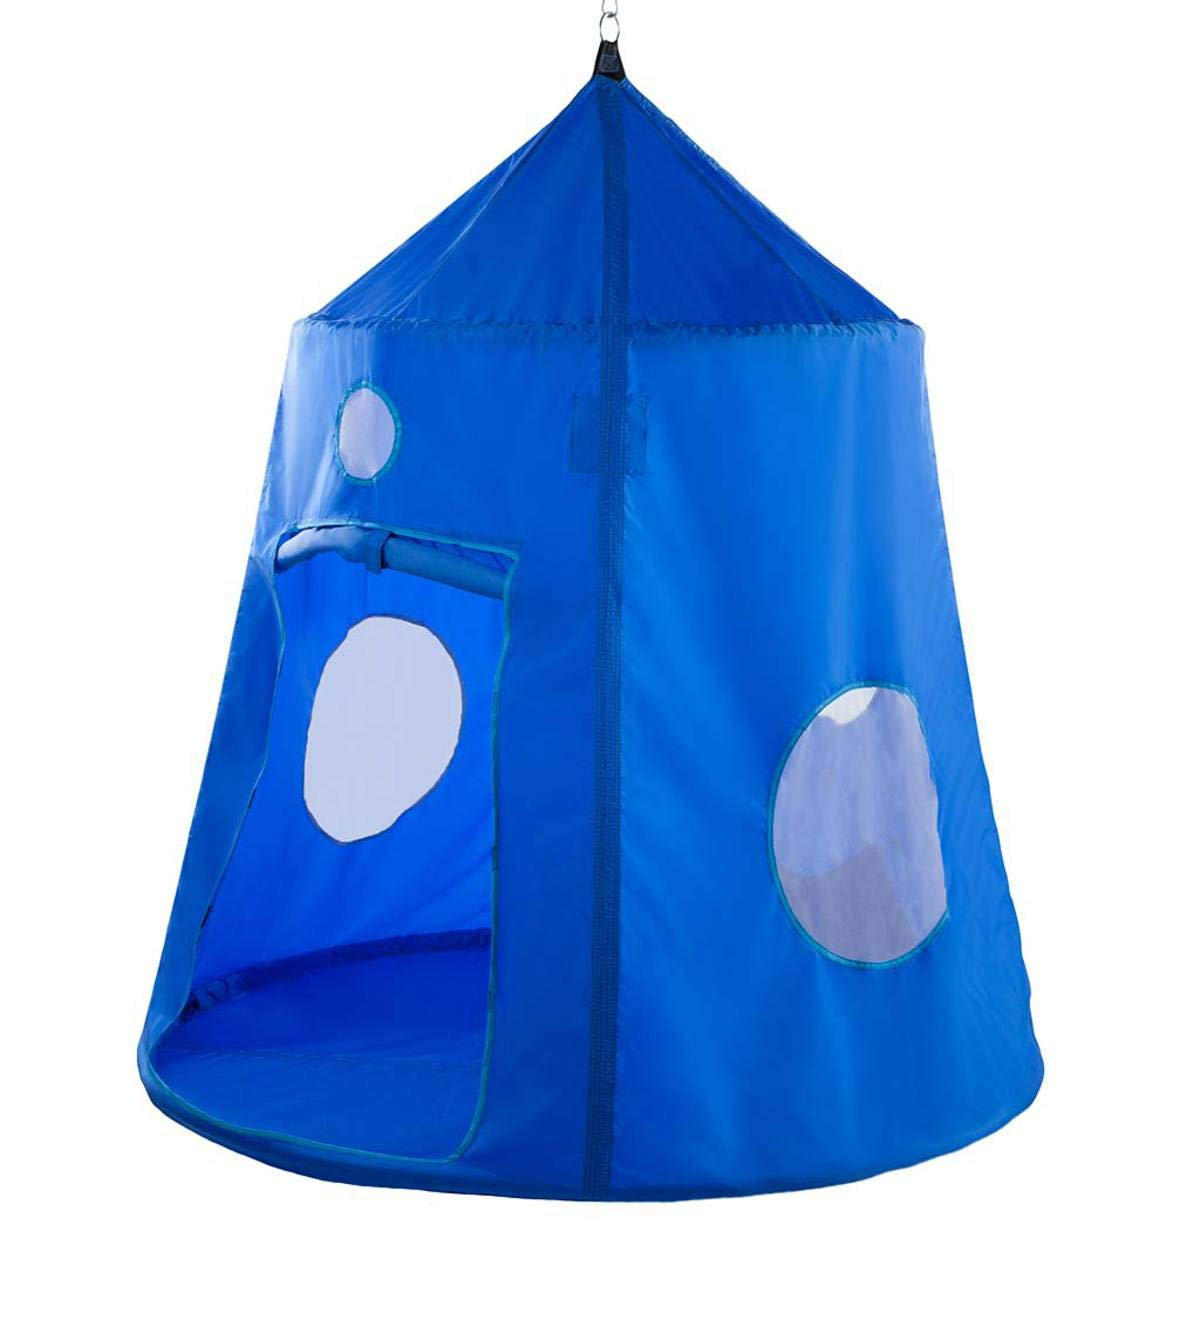 HearthSong® Nylon Family HugglePod Hangout Hanging Tree or Ceiling Play Tent - Indoor or Outdoor Use - Portable - 78 H x 60.5 Diam - Blue